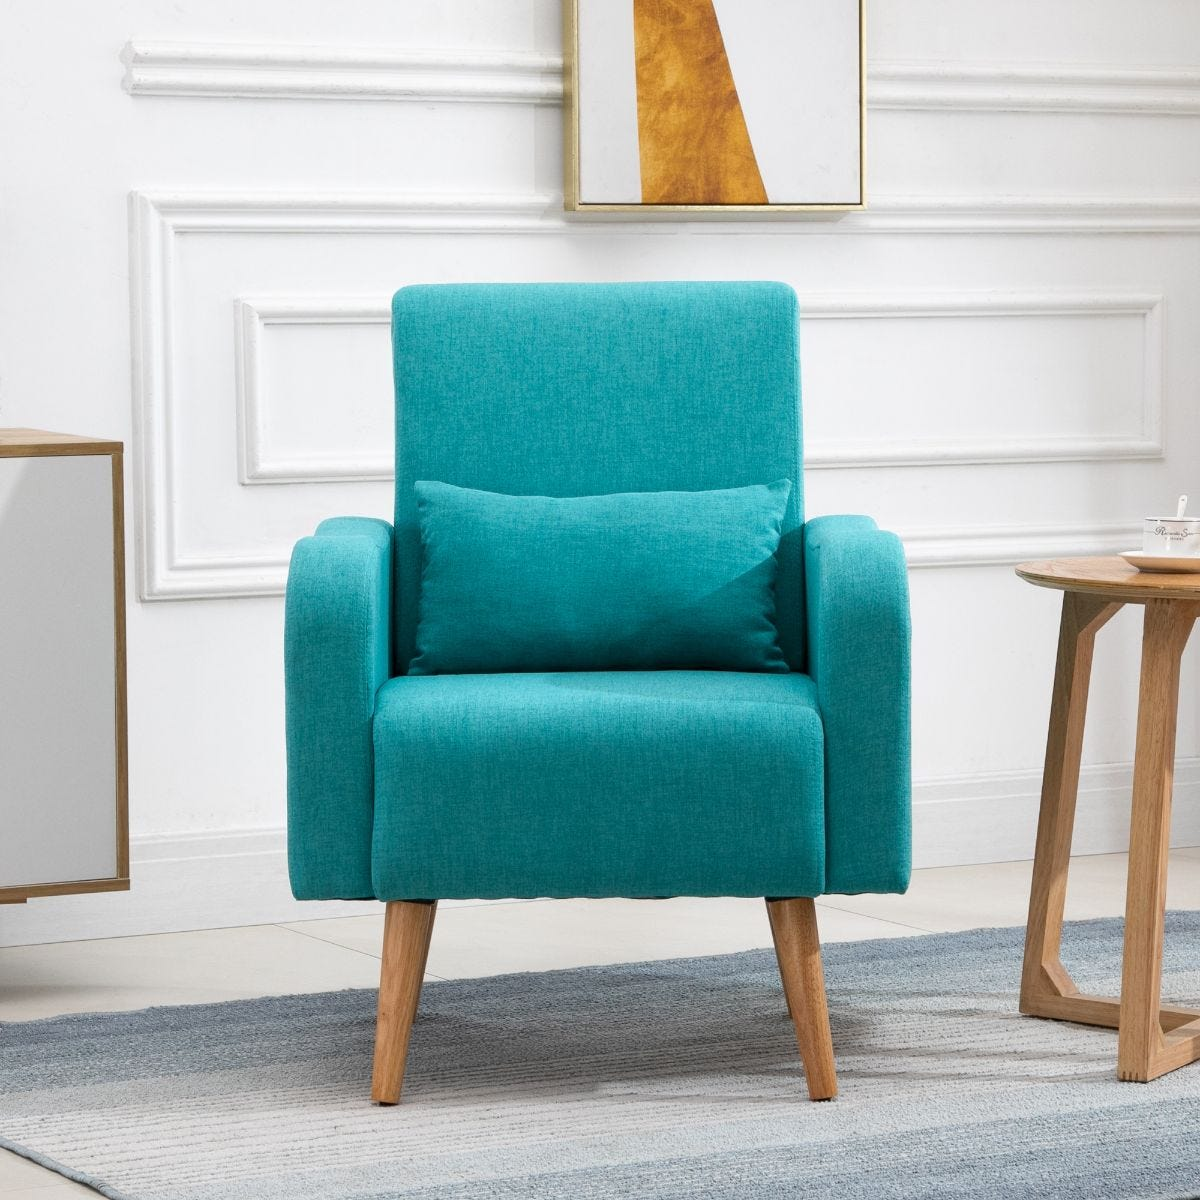 Minimalist Armchair Solid Wood Frame And Legs Faux Linen Teal